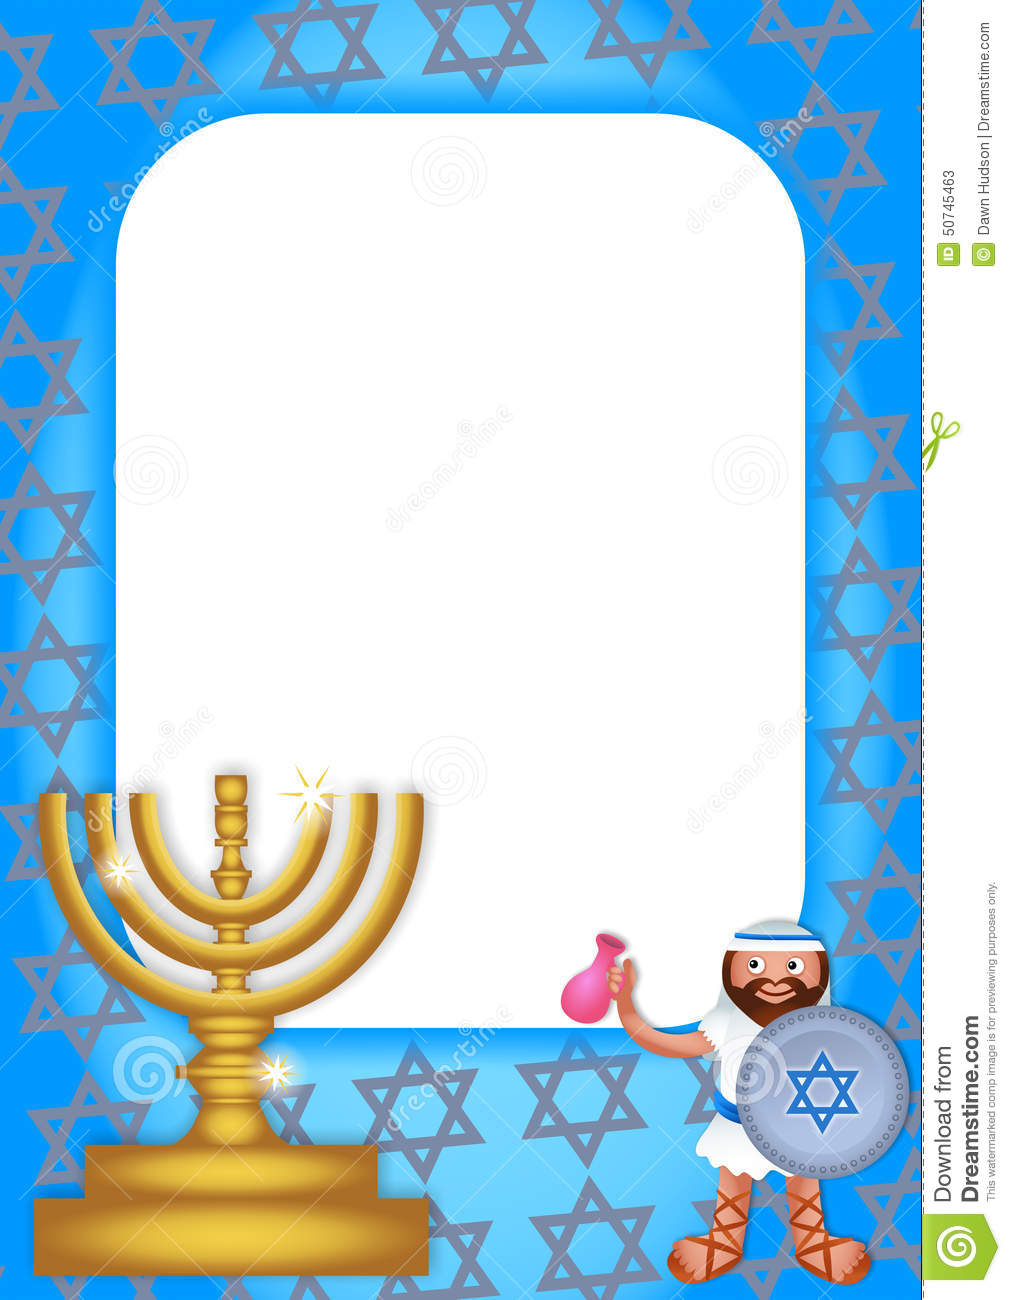 Hanukkah Border Papers by PaperDirect